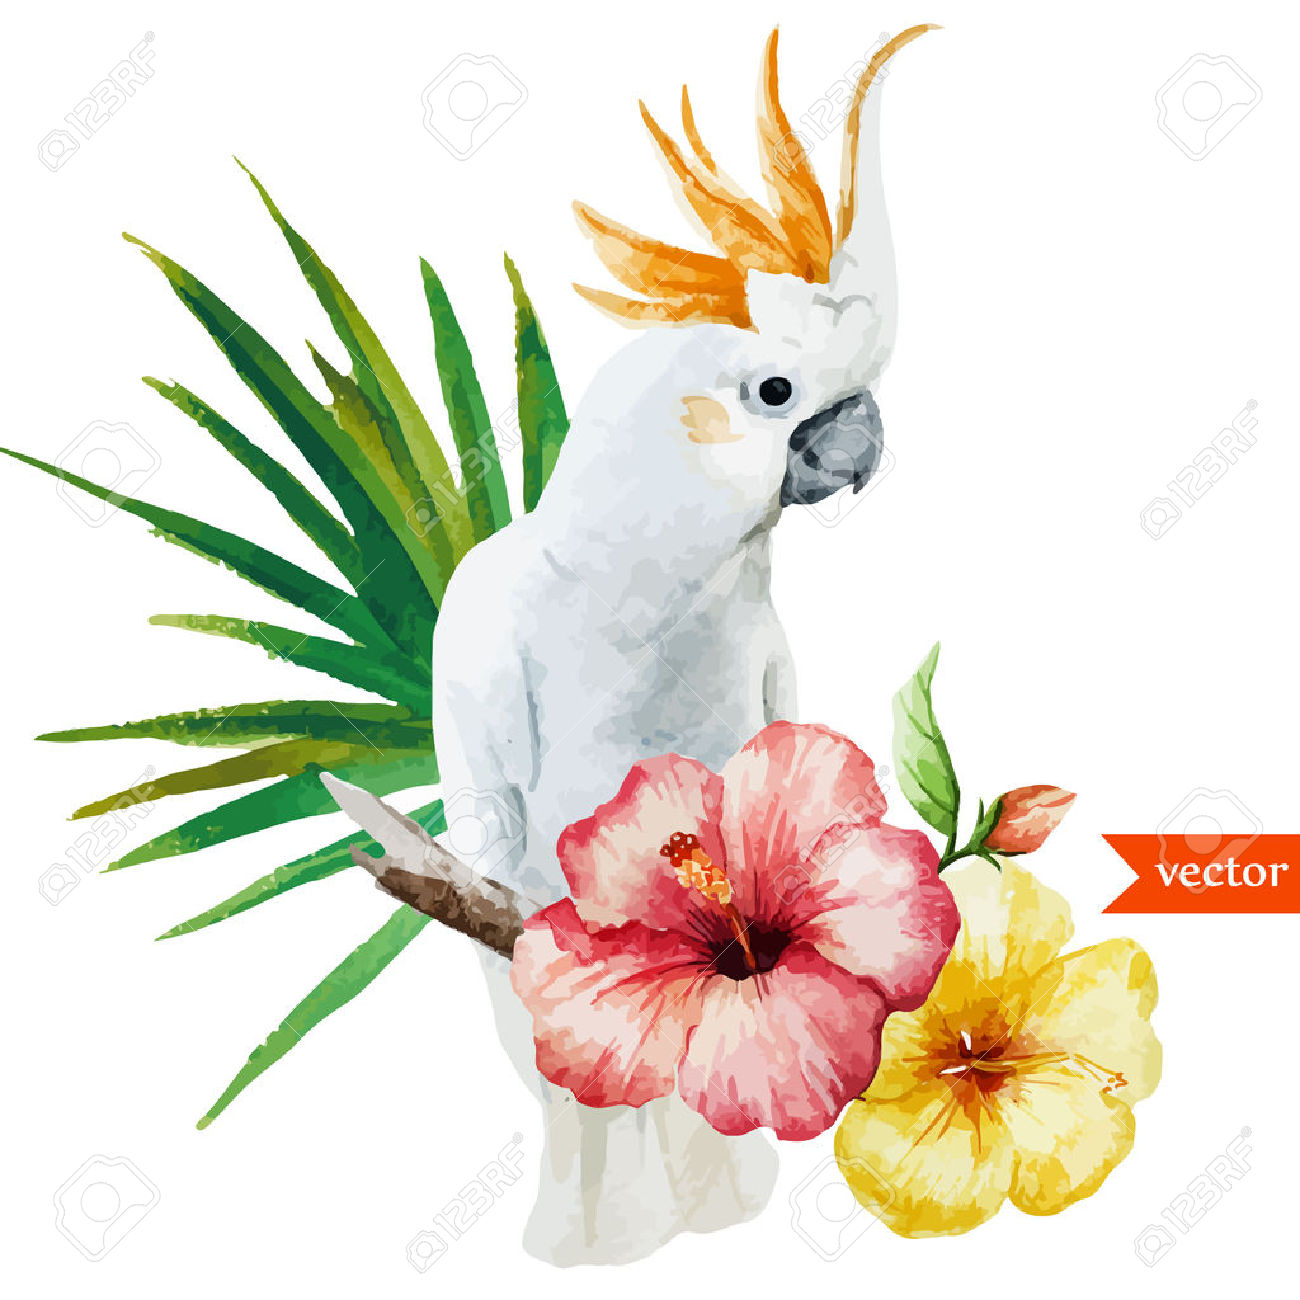 White Parrot Royalty Free Cliparts, Vectors, And Stock.